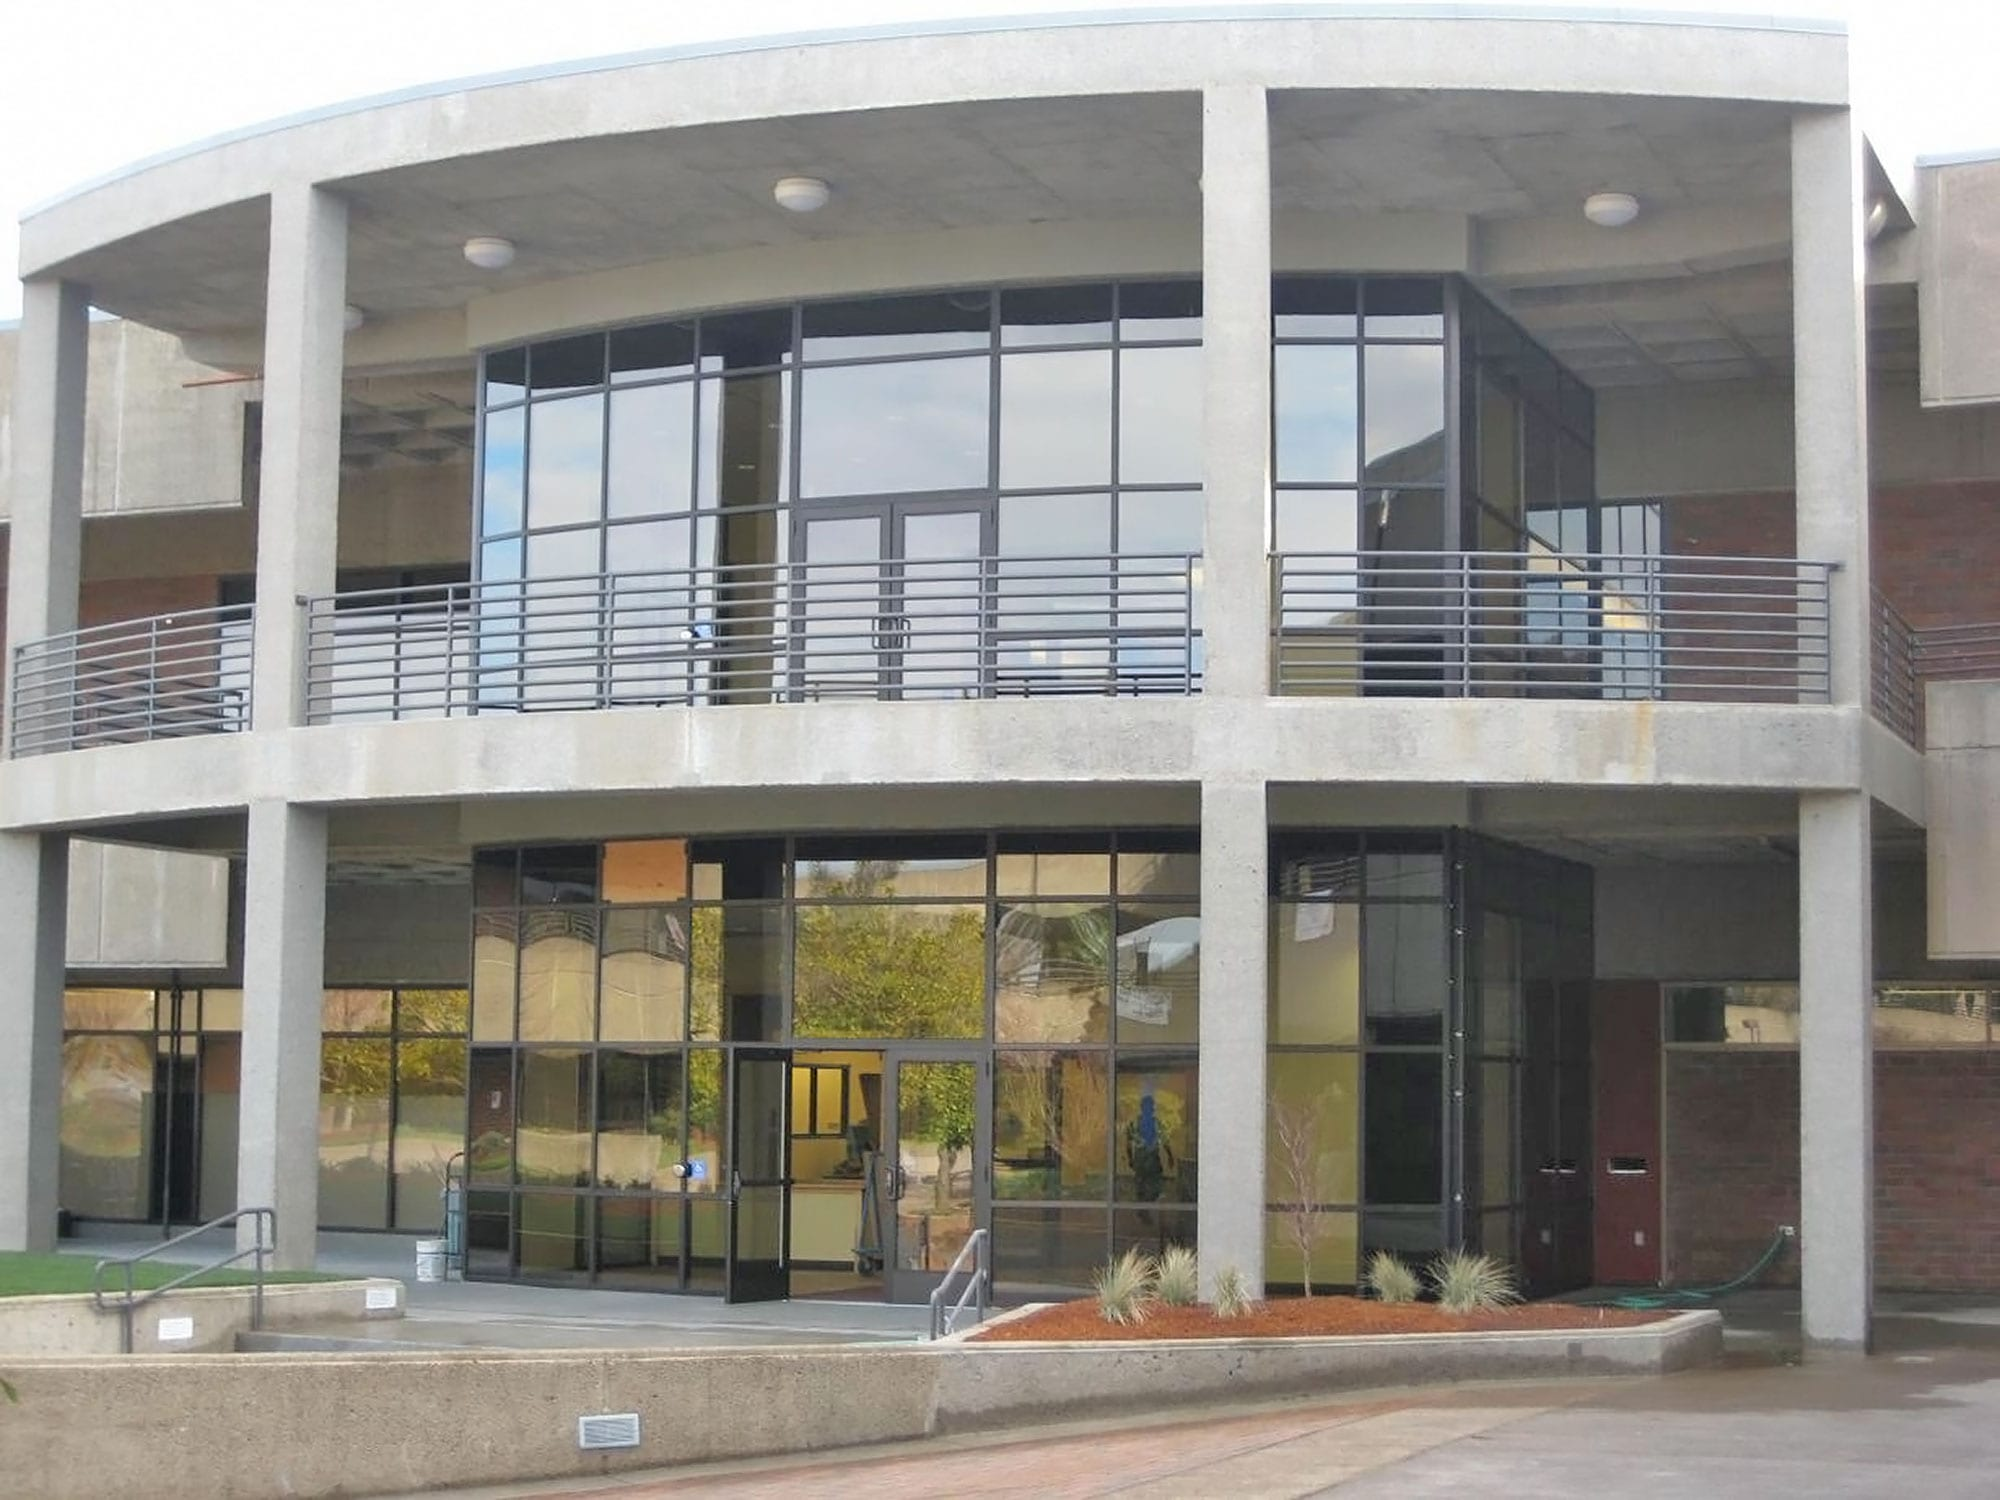 LBCC Library & Resource Center